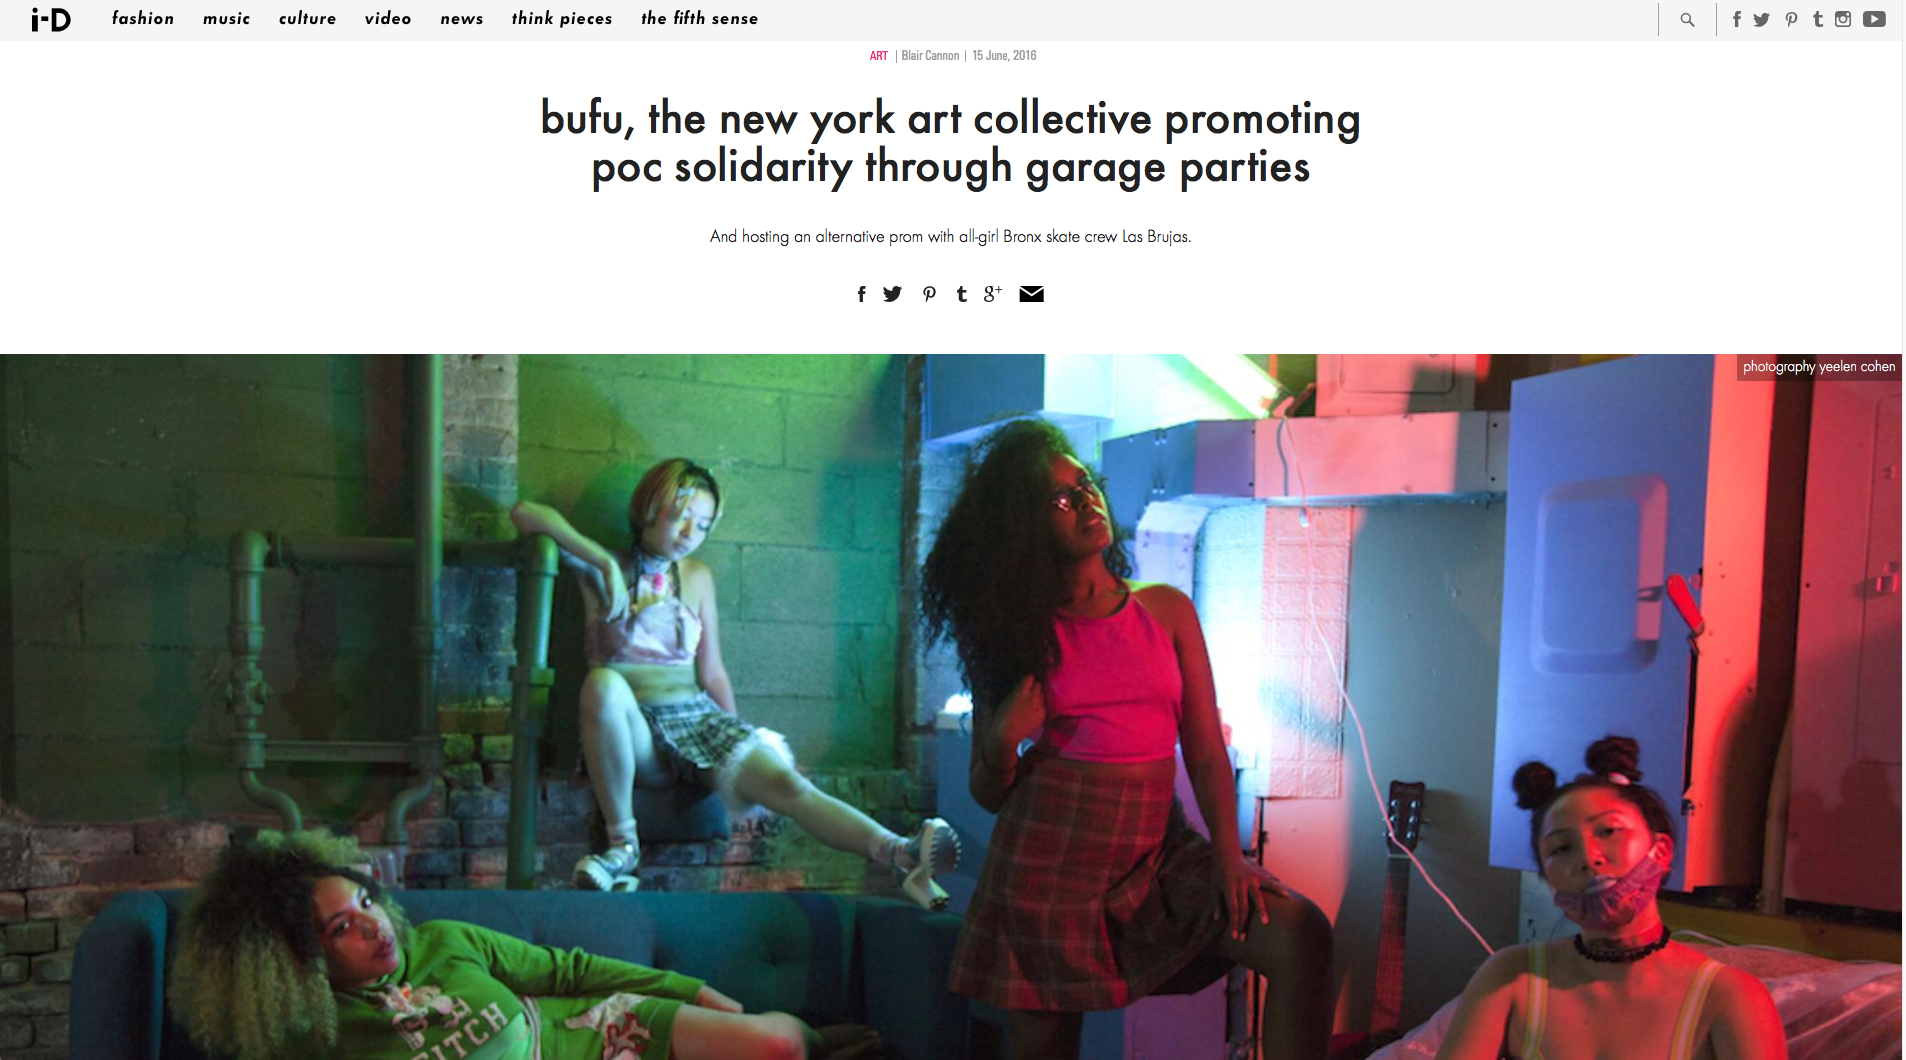 """""""BUFU, the New York Art Collective Promoting POC Solidarity through garage parties"""" by Blair Cannon on i-D Magazine"""